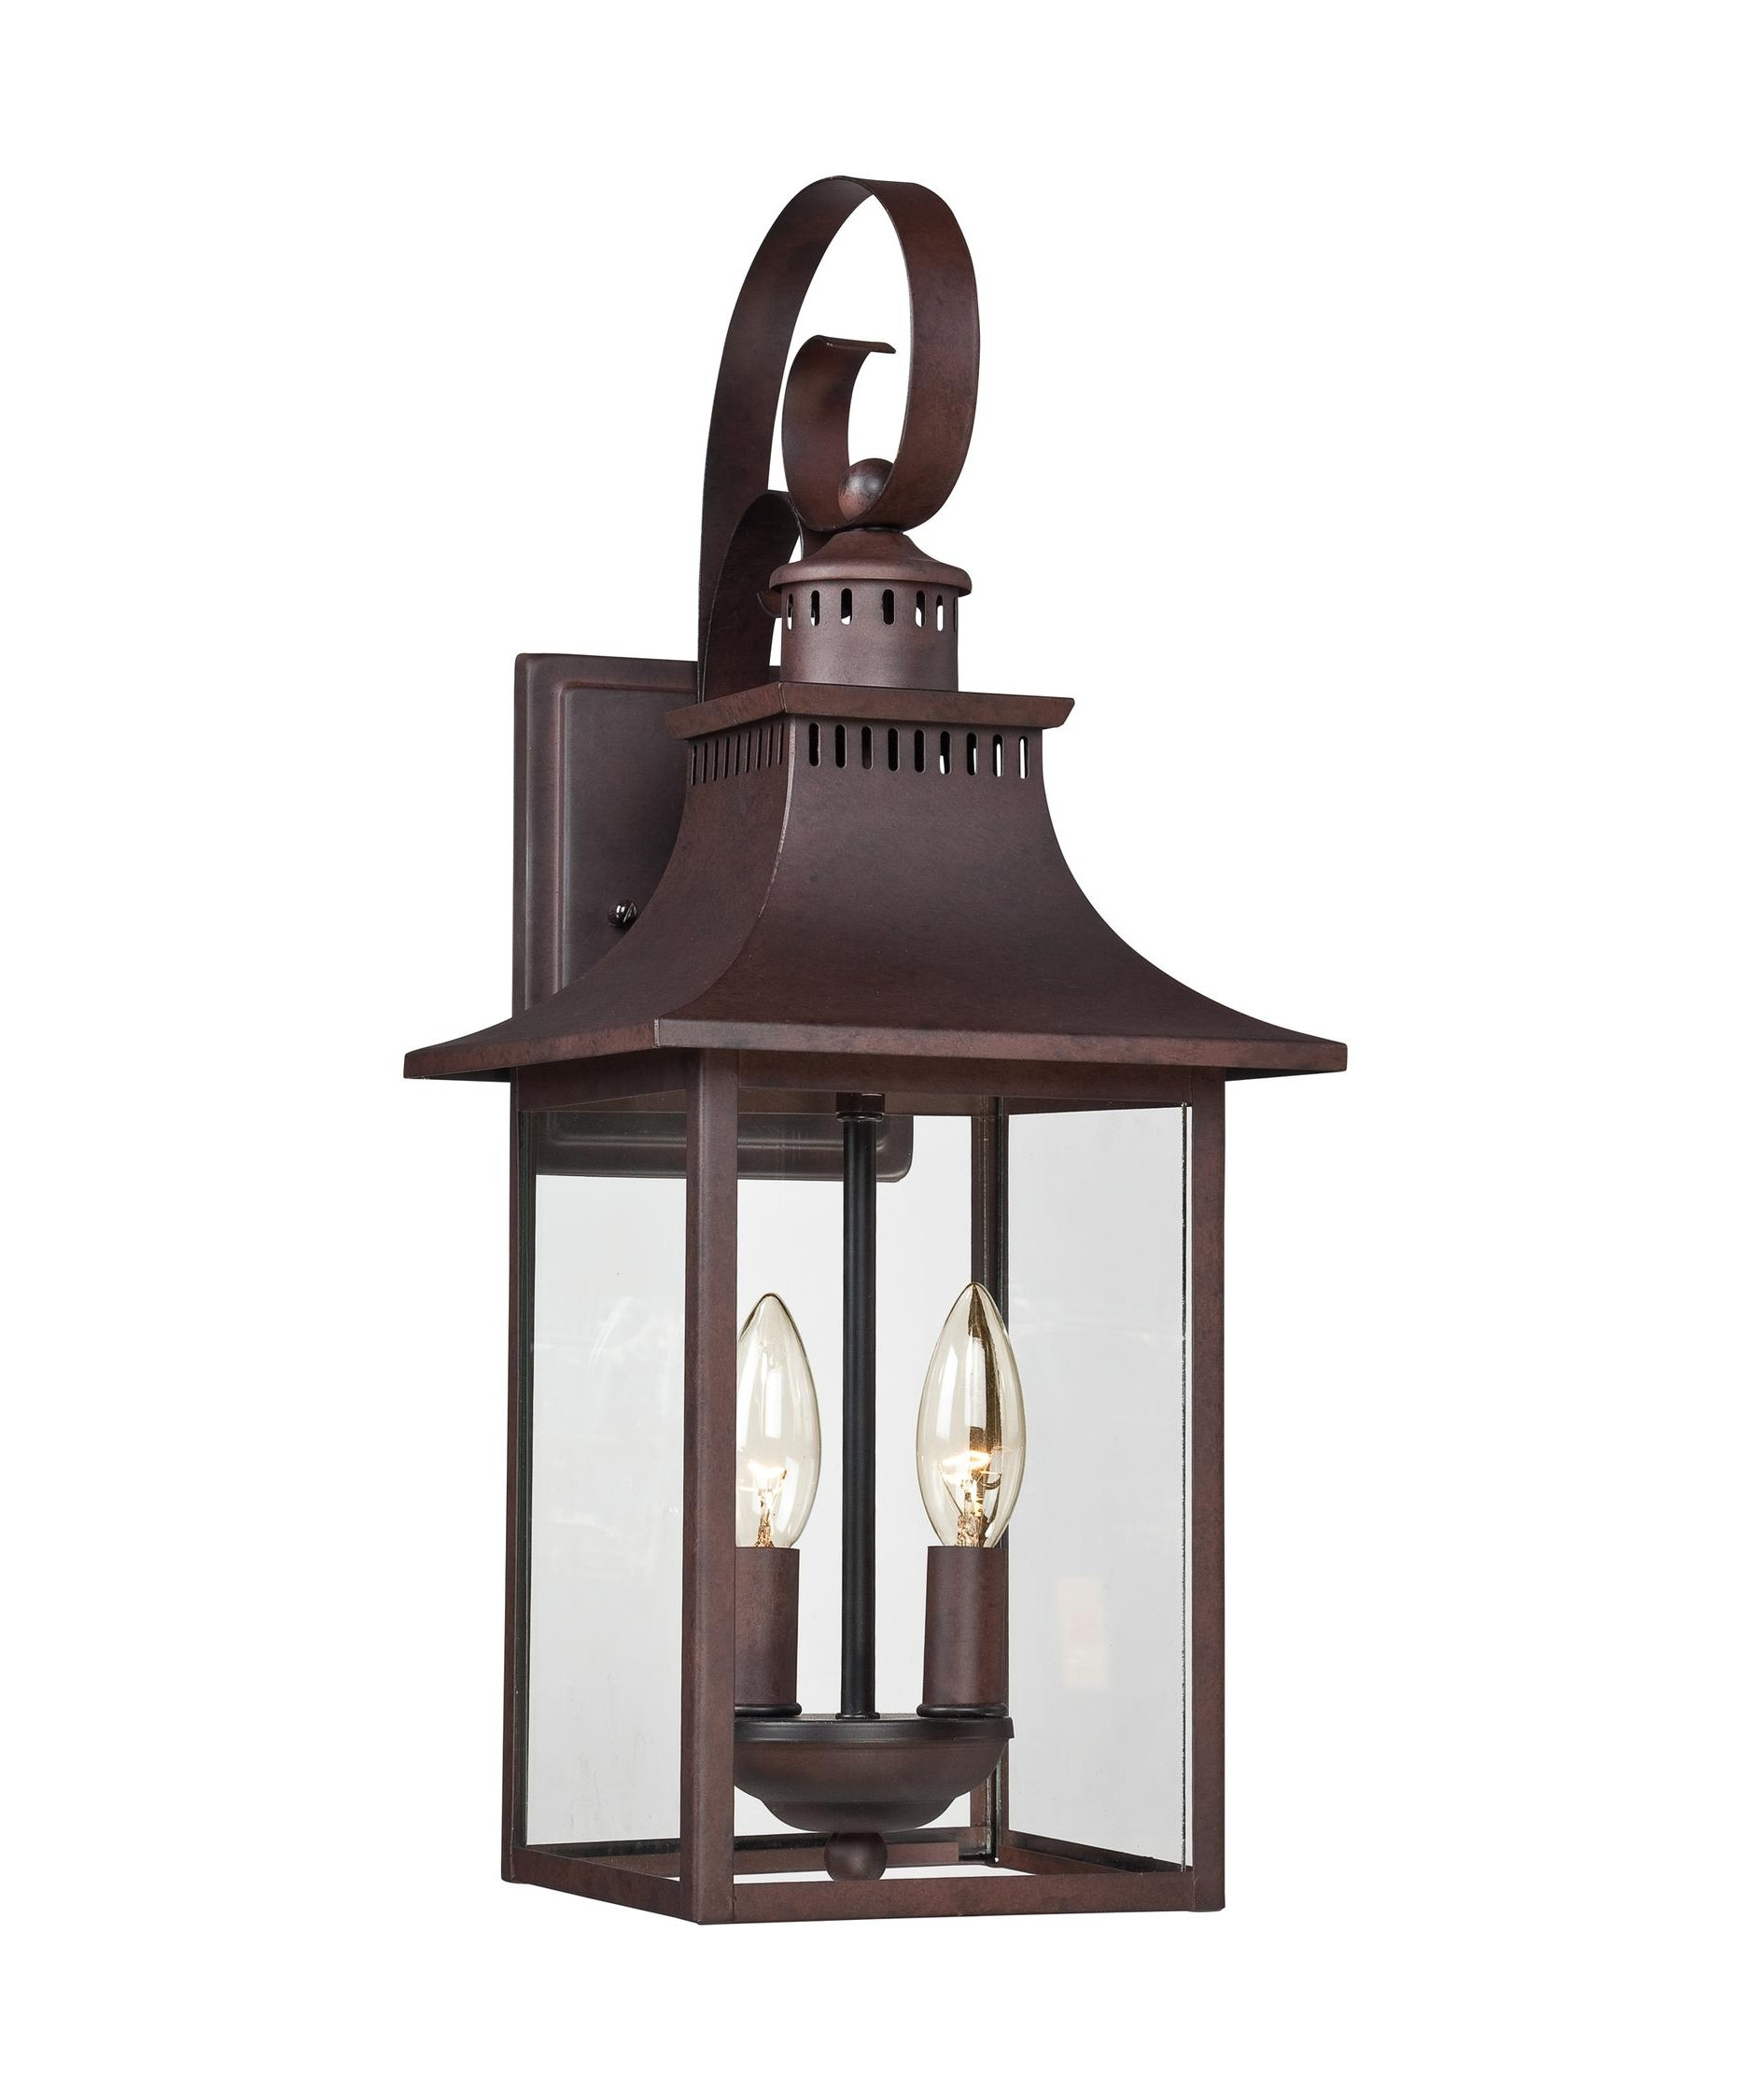 2019 Quoizel Ccr8408 Chancellor 8 Inch Wide 2 Light Outdoor Wall Light Throughout Copper Outdoor Lanterns (View 13 of 20)